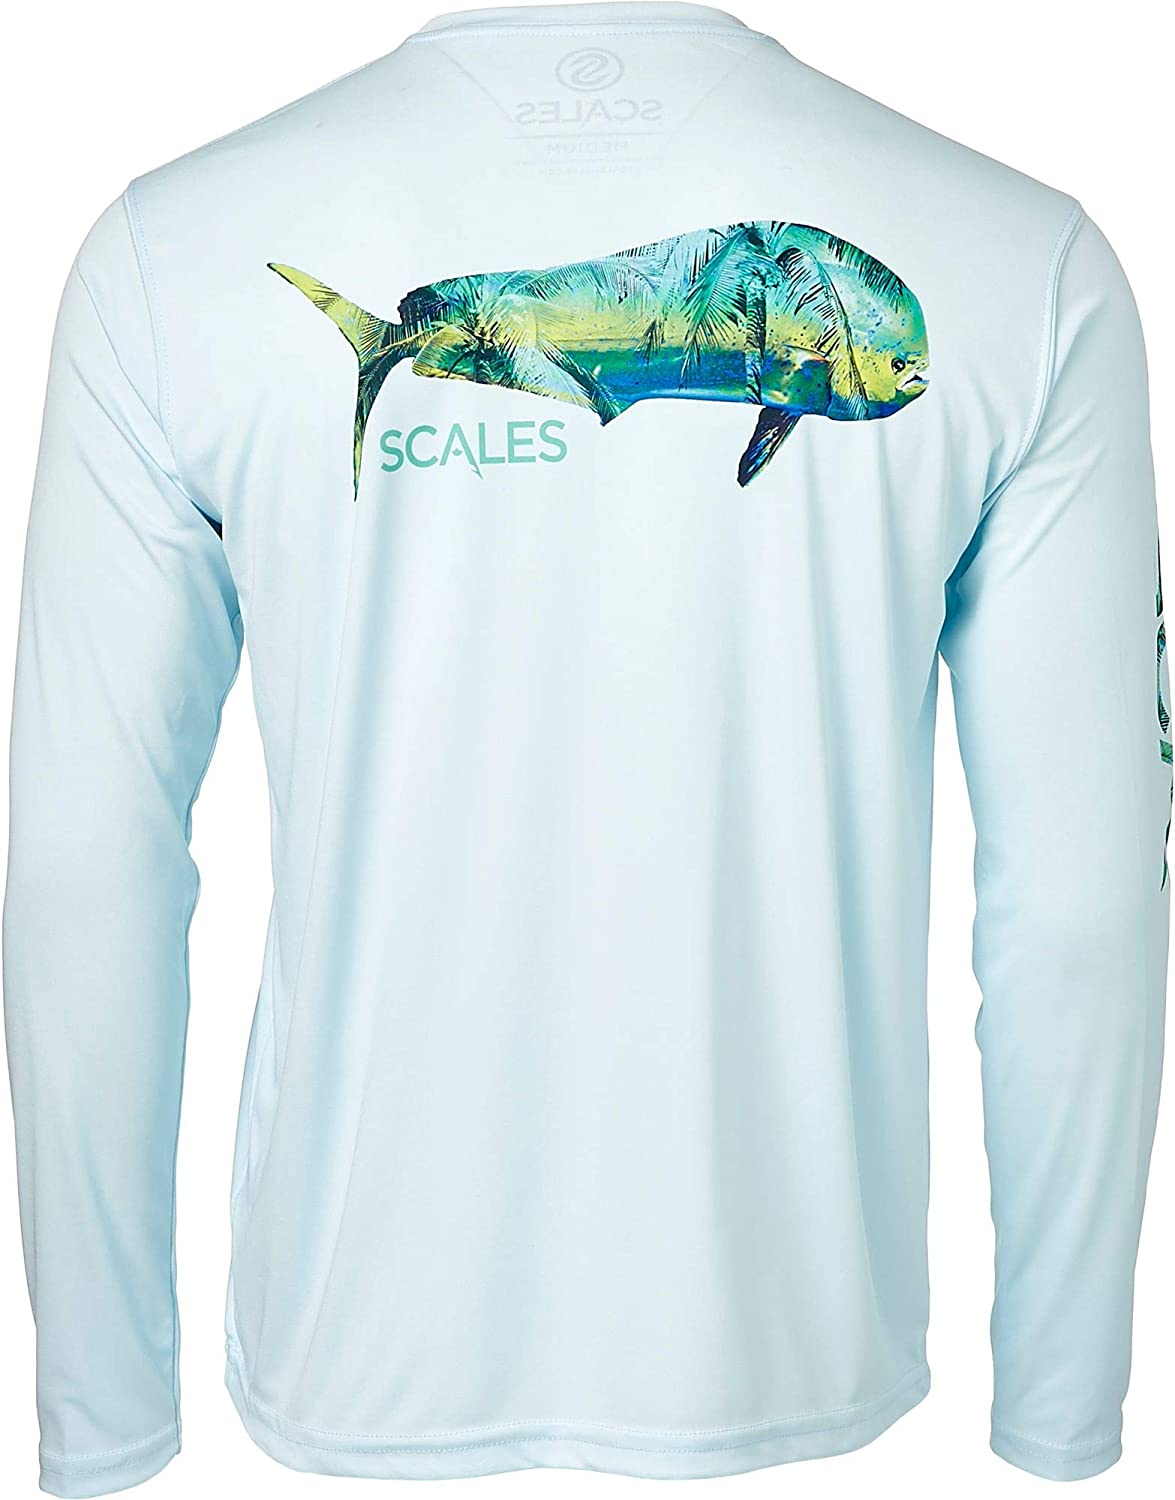 Scales Men's Tropical Mahi Super sale period limited Low price Performance in Blue Light Shirt